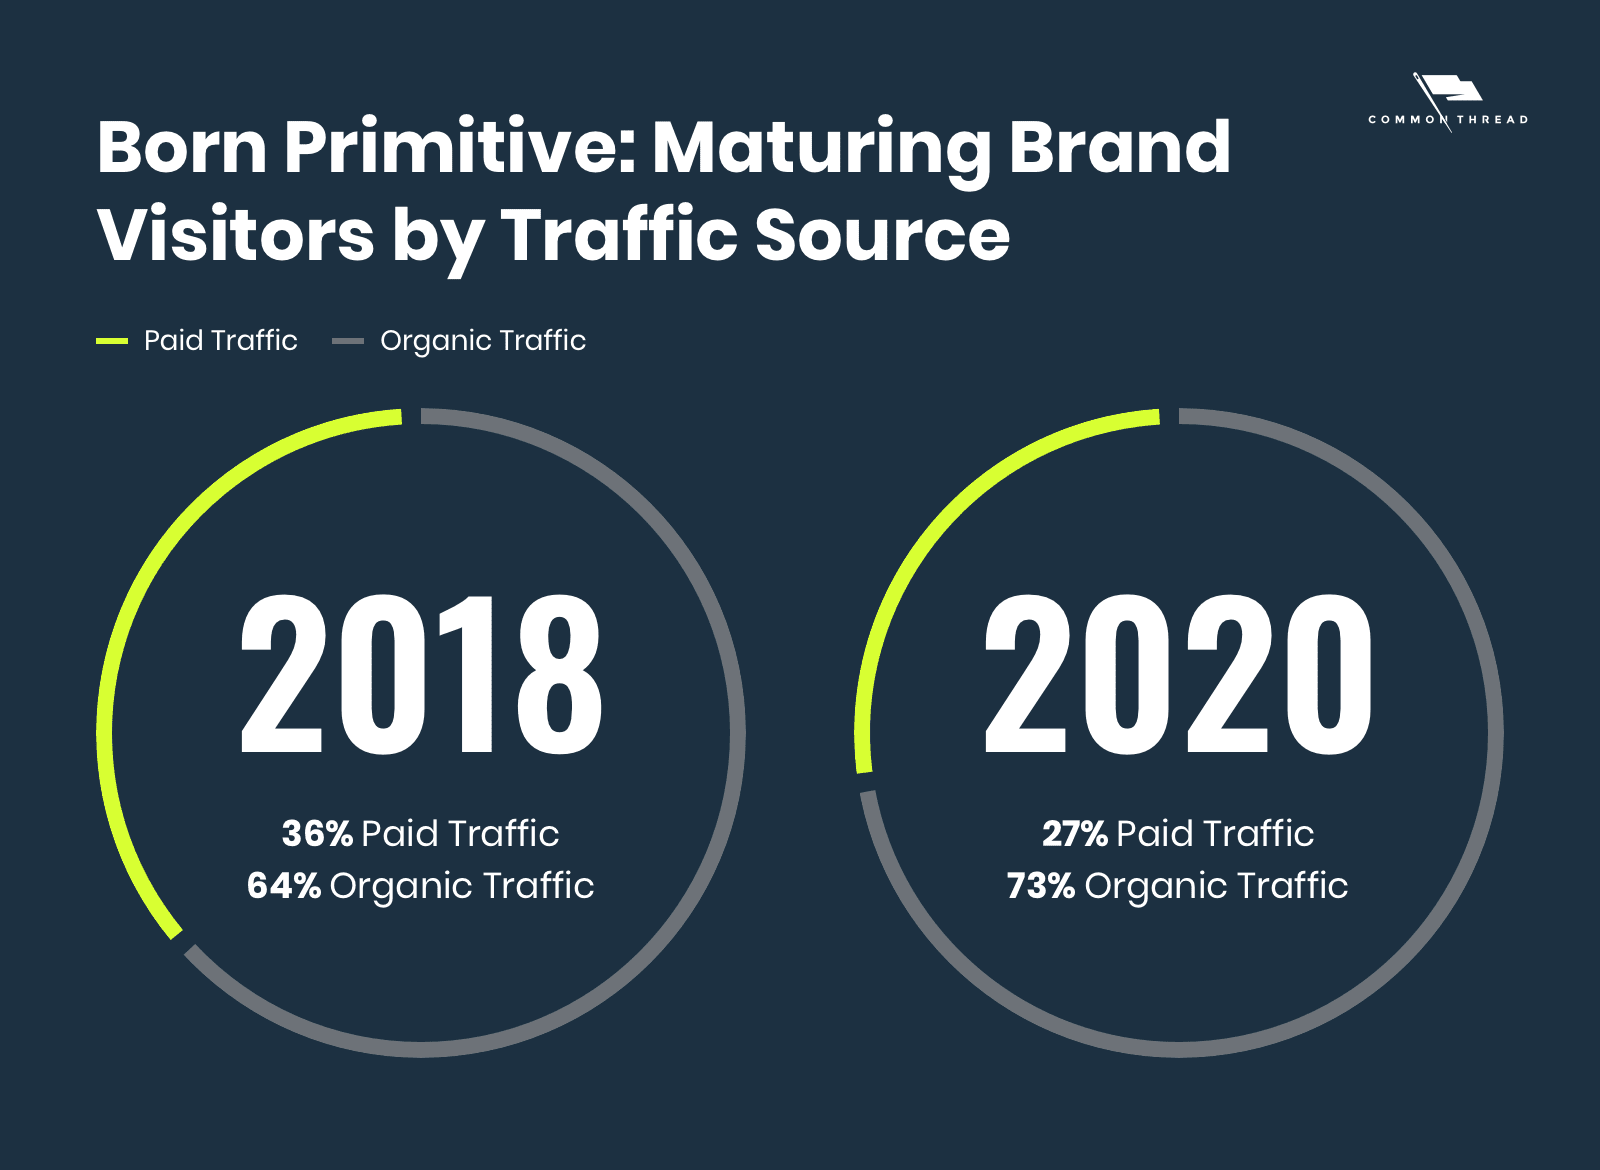 Born Primitive: Maturing Brand Visitors by Traffic Source